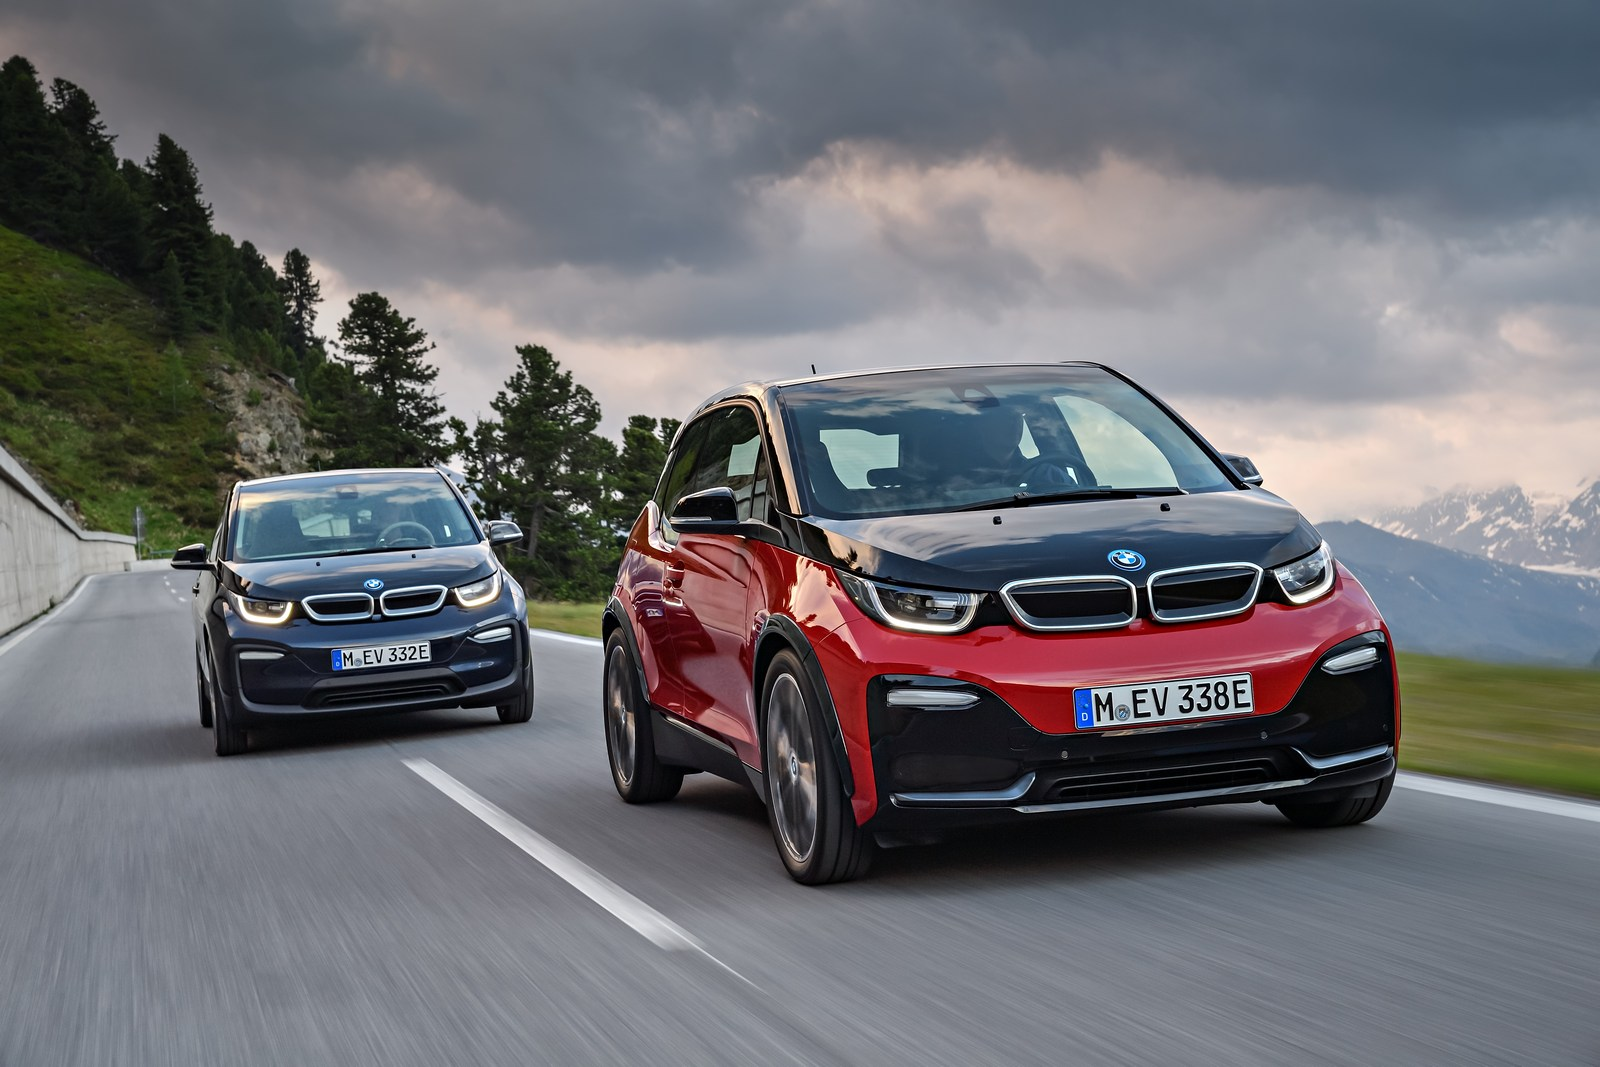 bmw-i2-rumored-to-arrive-in-2024-133309_1